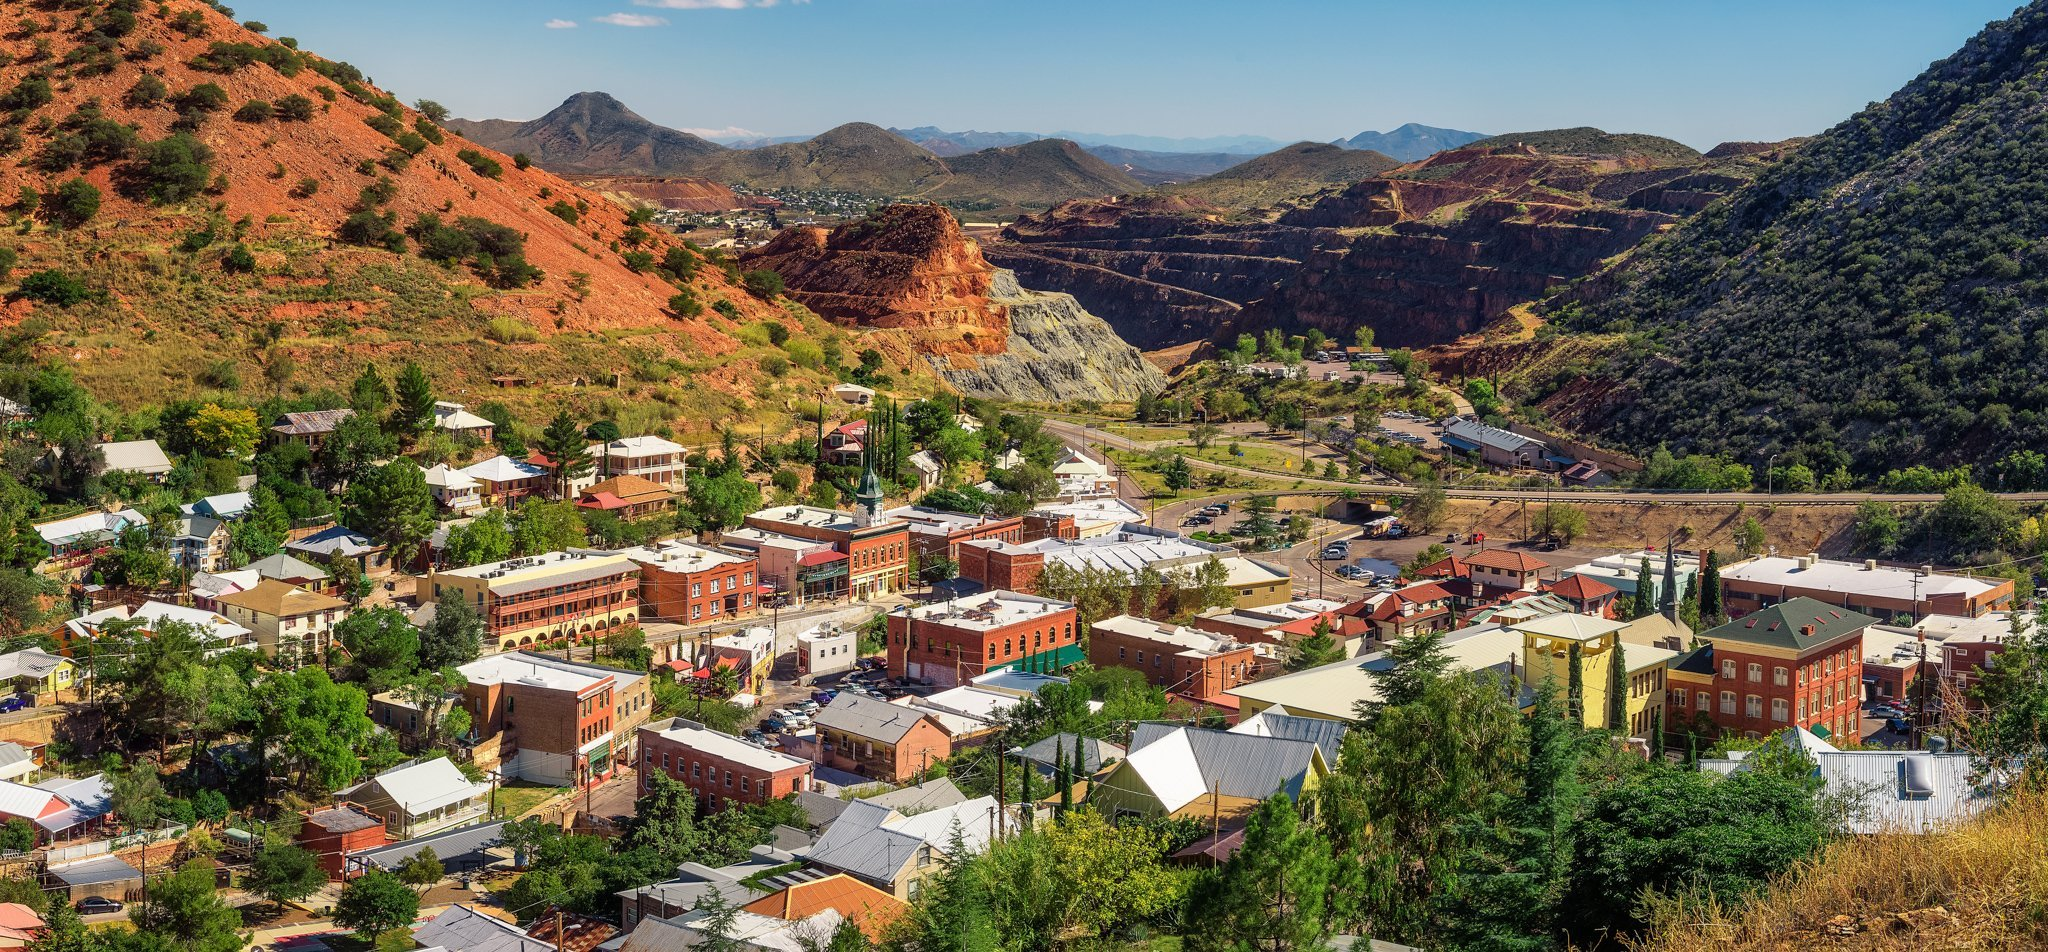 Bisbee, Arizona: How To Spend A Perfect Day